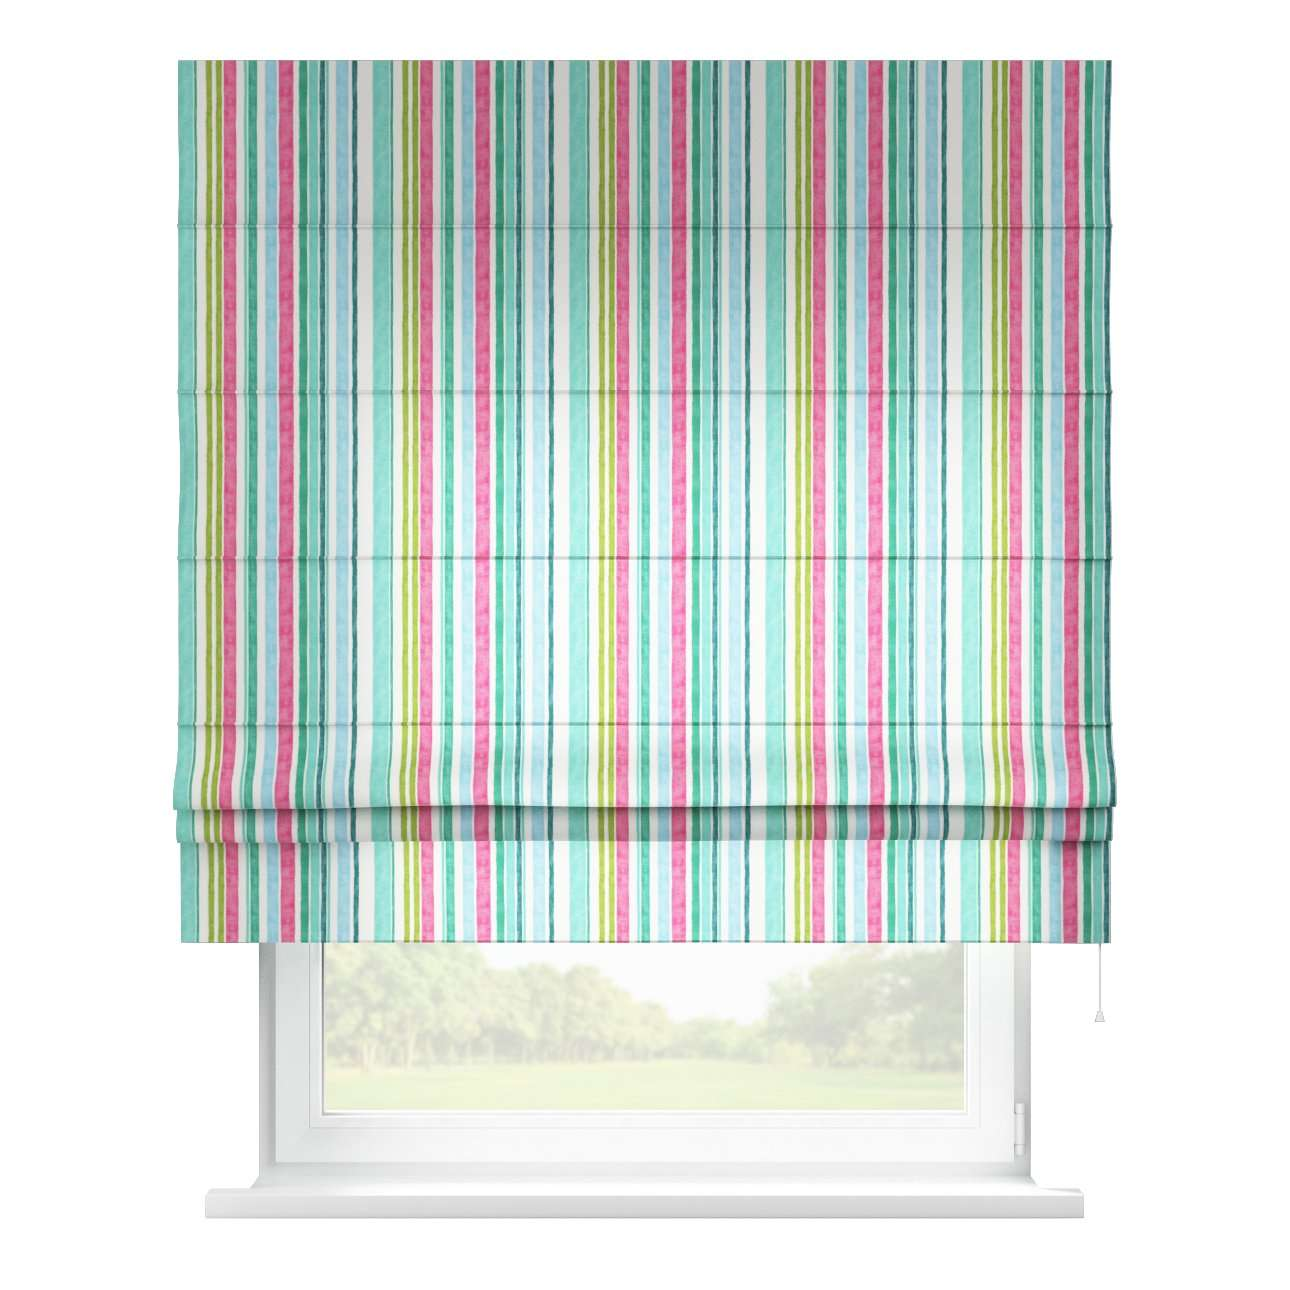 Padva roman blind  in collection Monet, fabric: 140-03